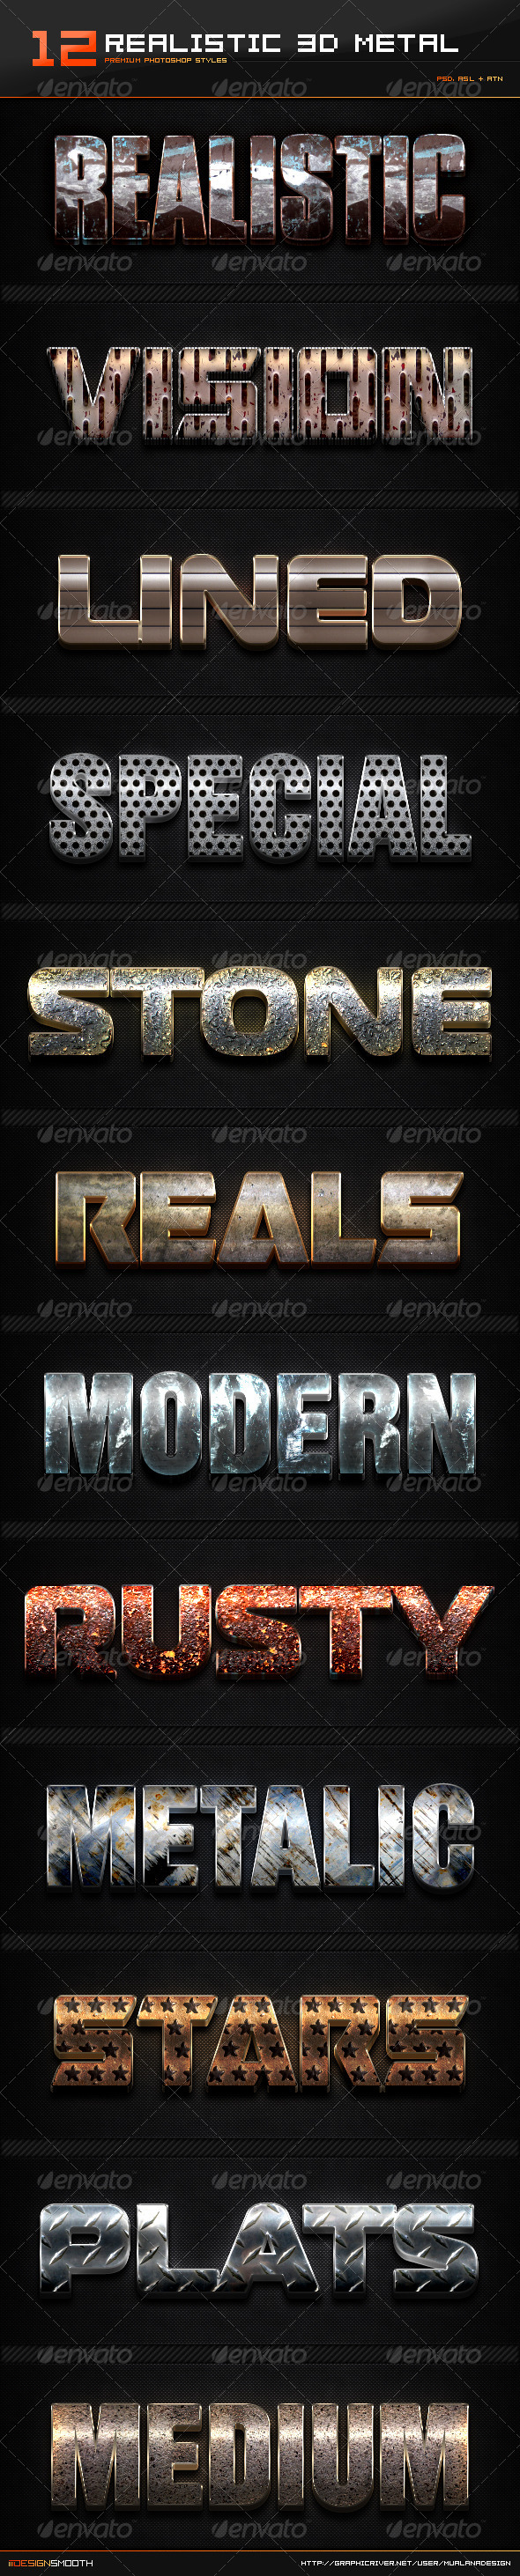 GraphicRiver 12 Realistic 3D Metal Styles & Actions 8454759